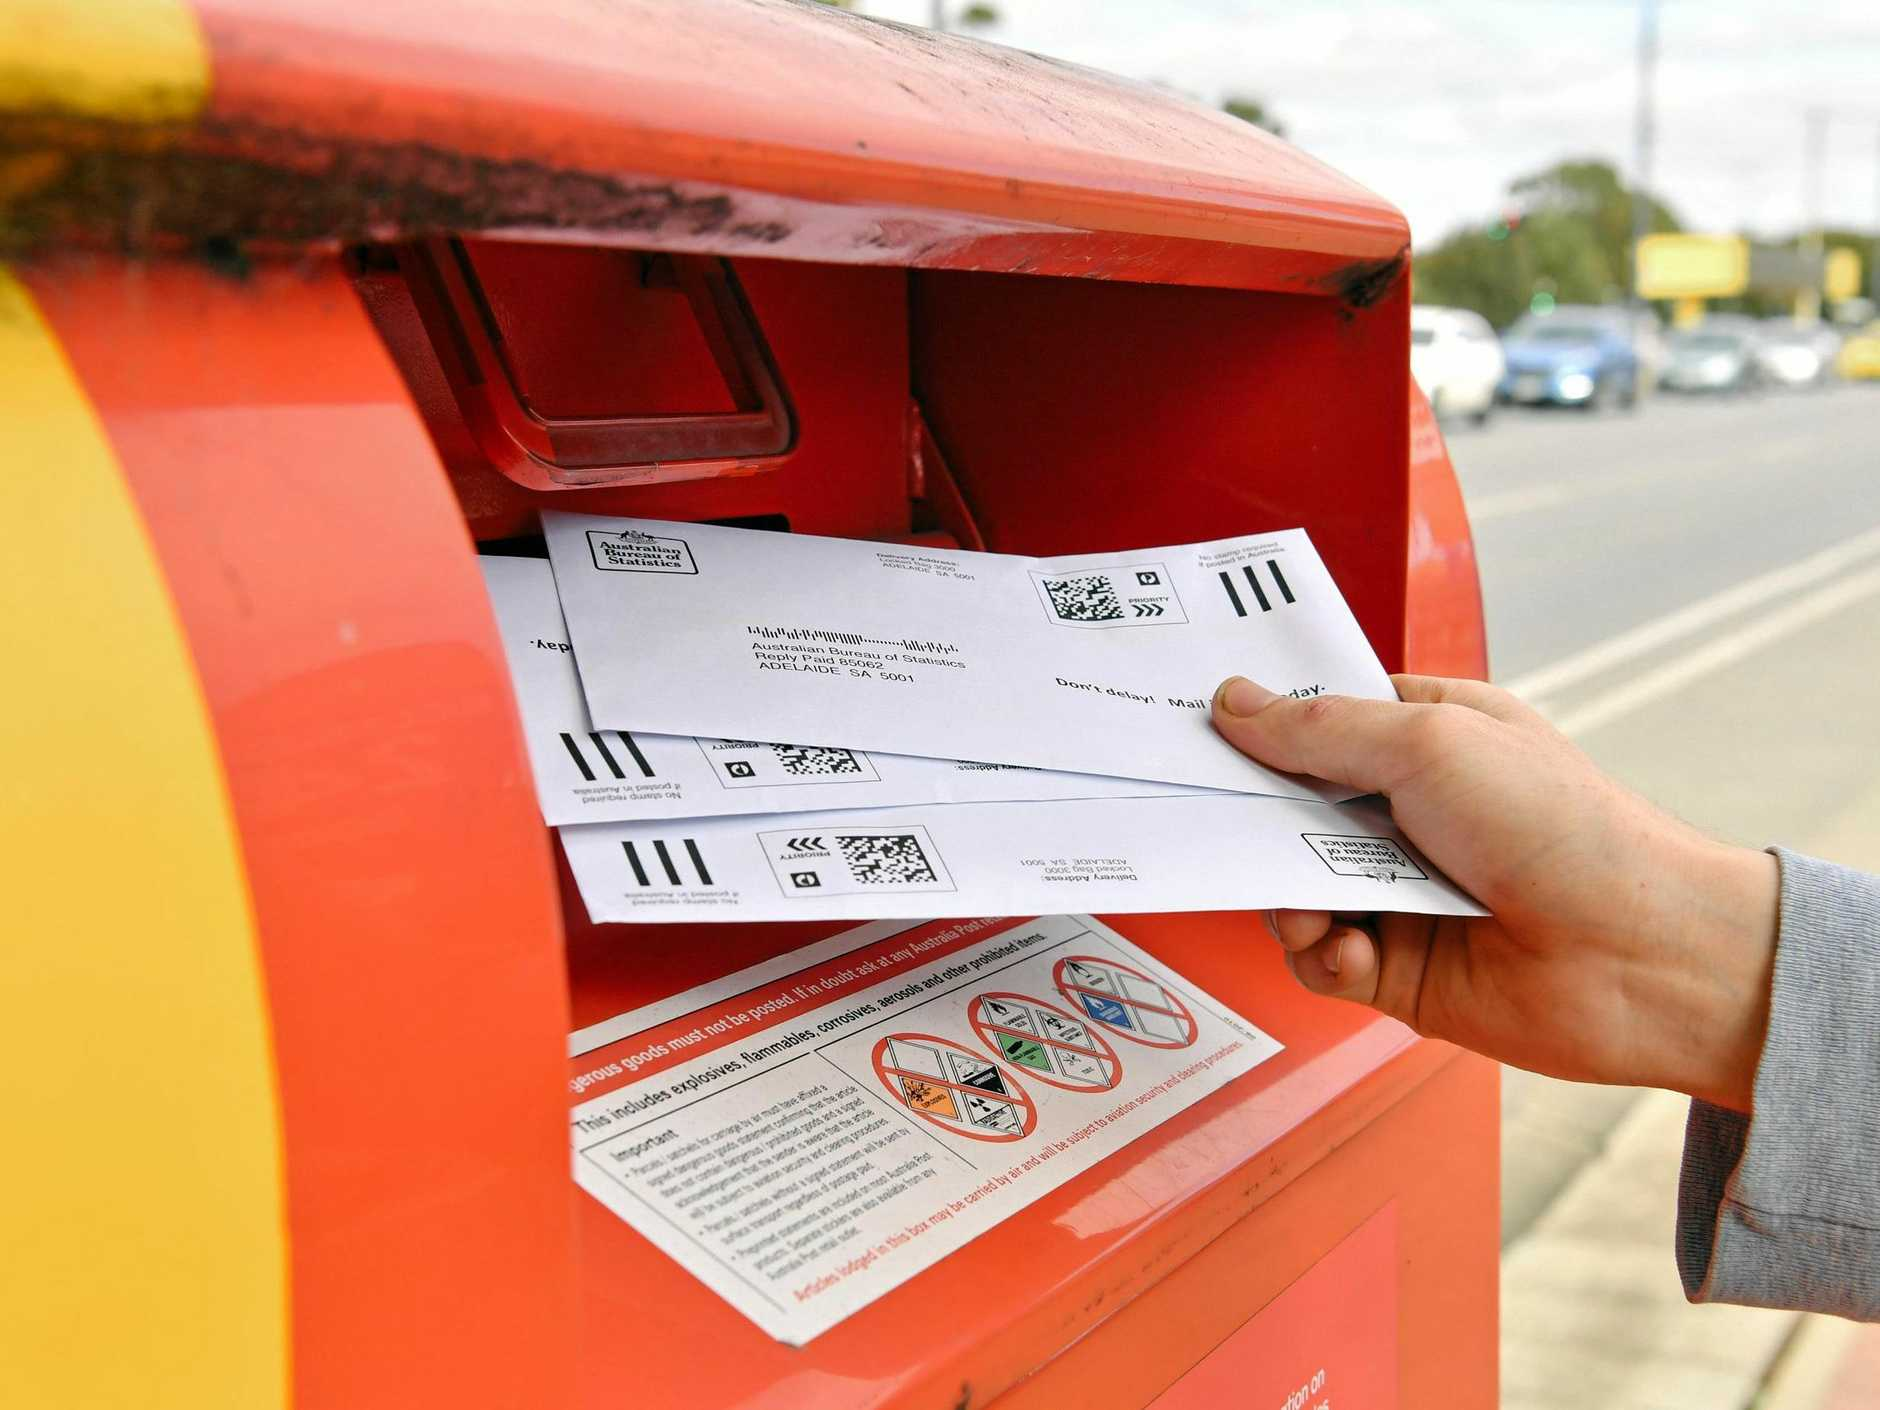 Sealed envelopes from the Marriage Law Postal Survey are seen being posted in Adelaide, Tuesday, September 19, 2017. (AAP Image/Morgan Sette)